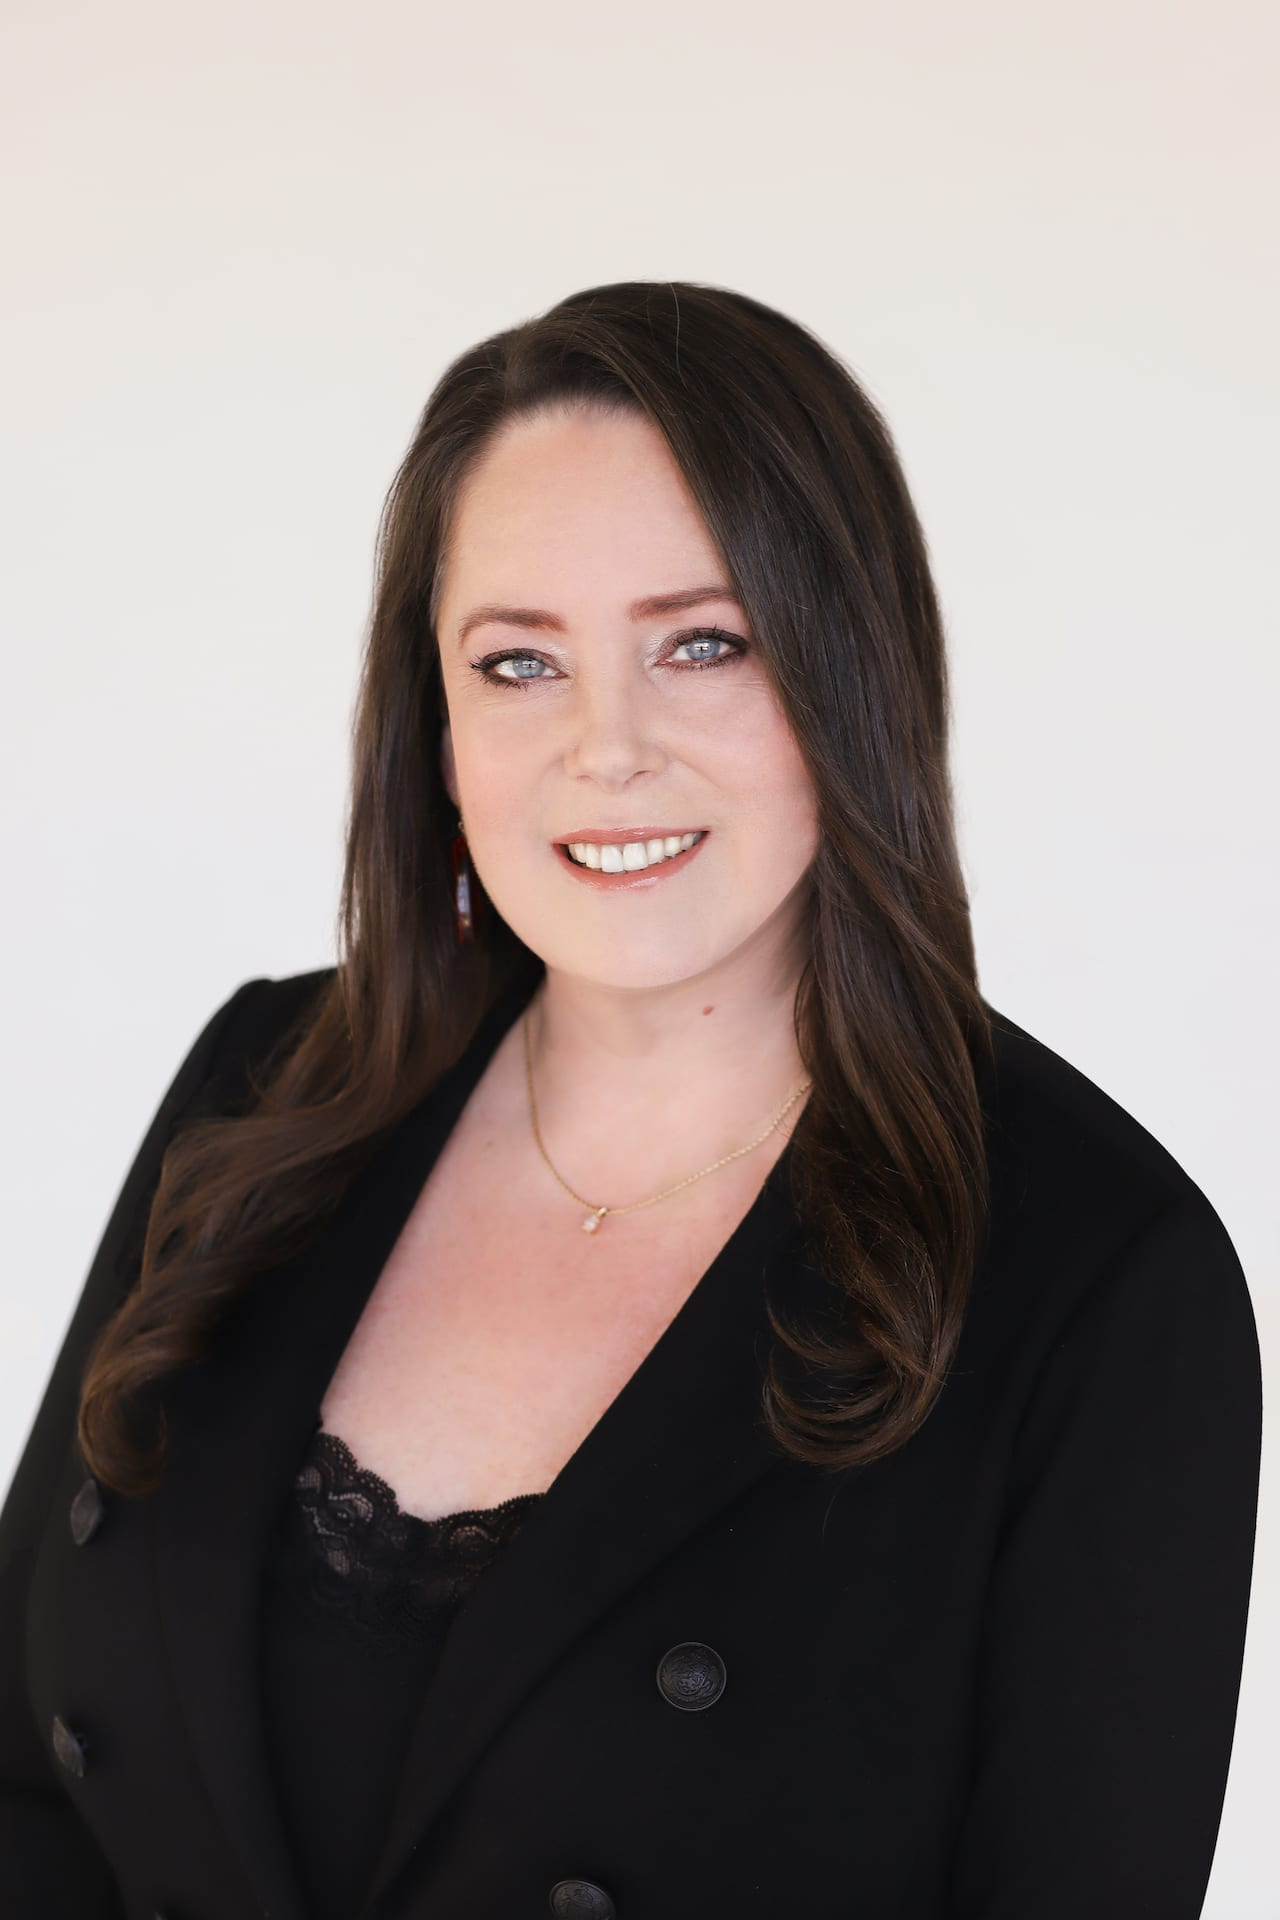 Susan Gaussiran is our Office Manager at Millennial Design + Build, Home Builders in Dallas Texas, modern style homes, and custom home builders in DFW